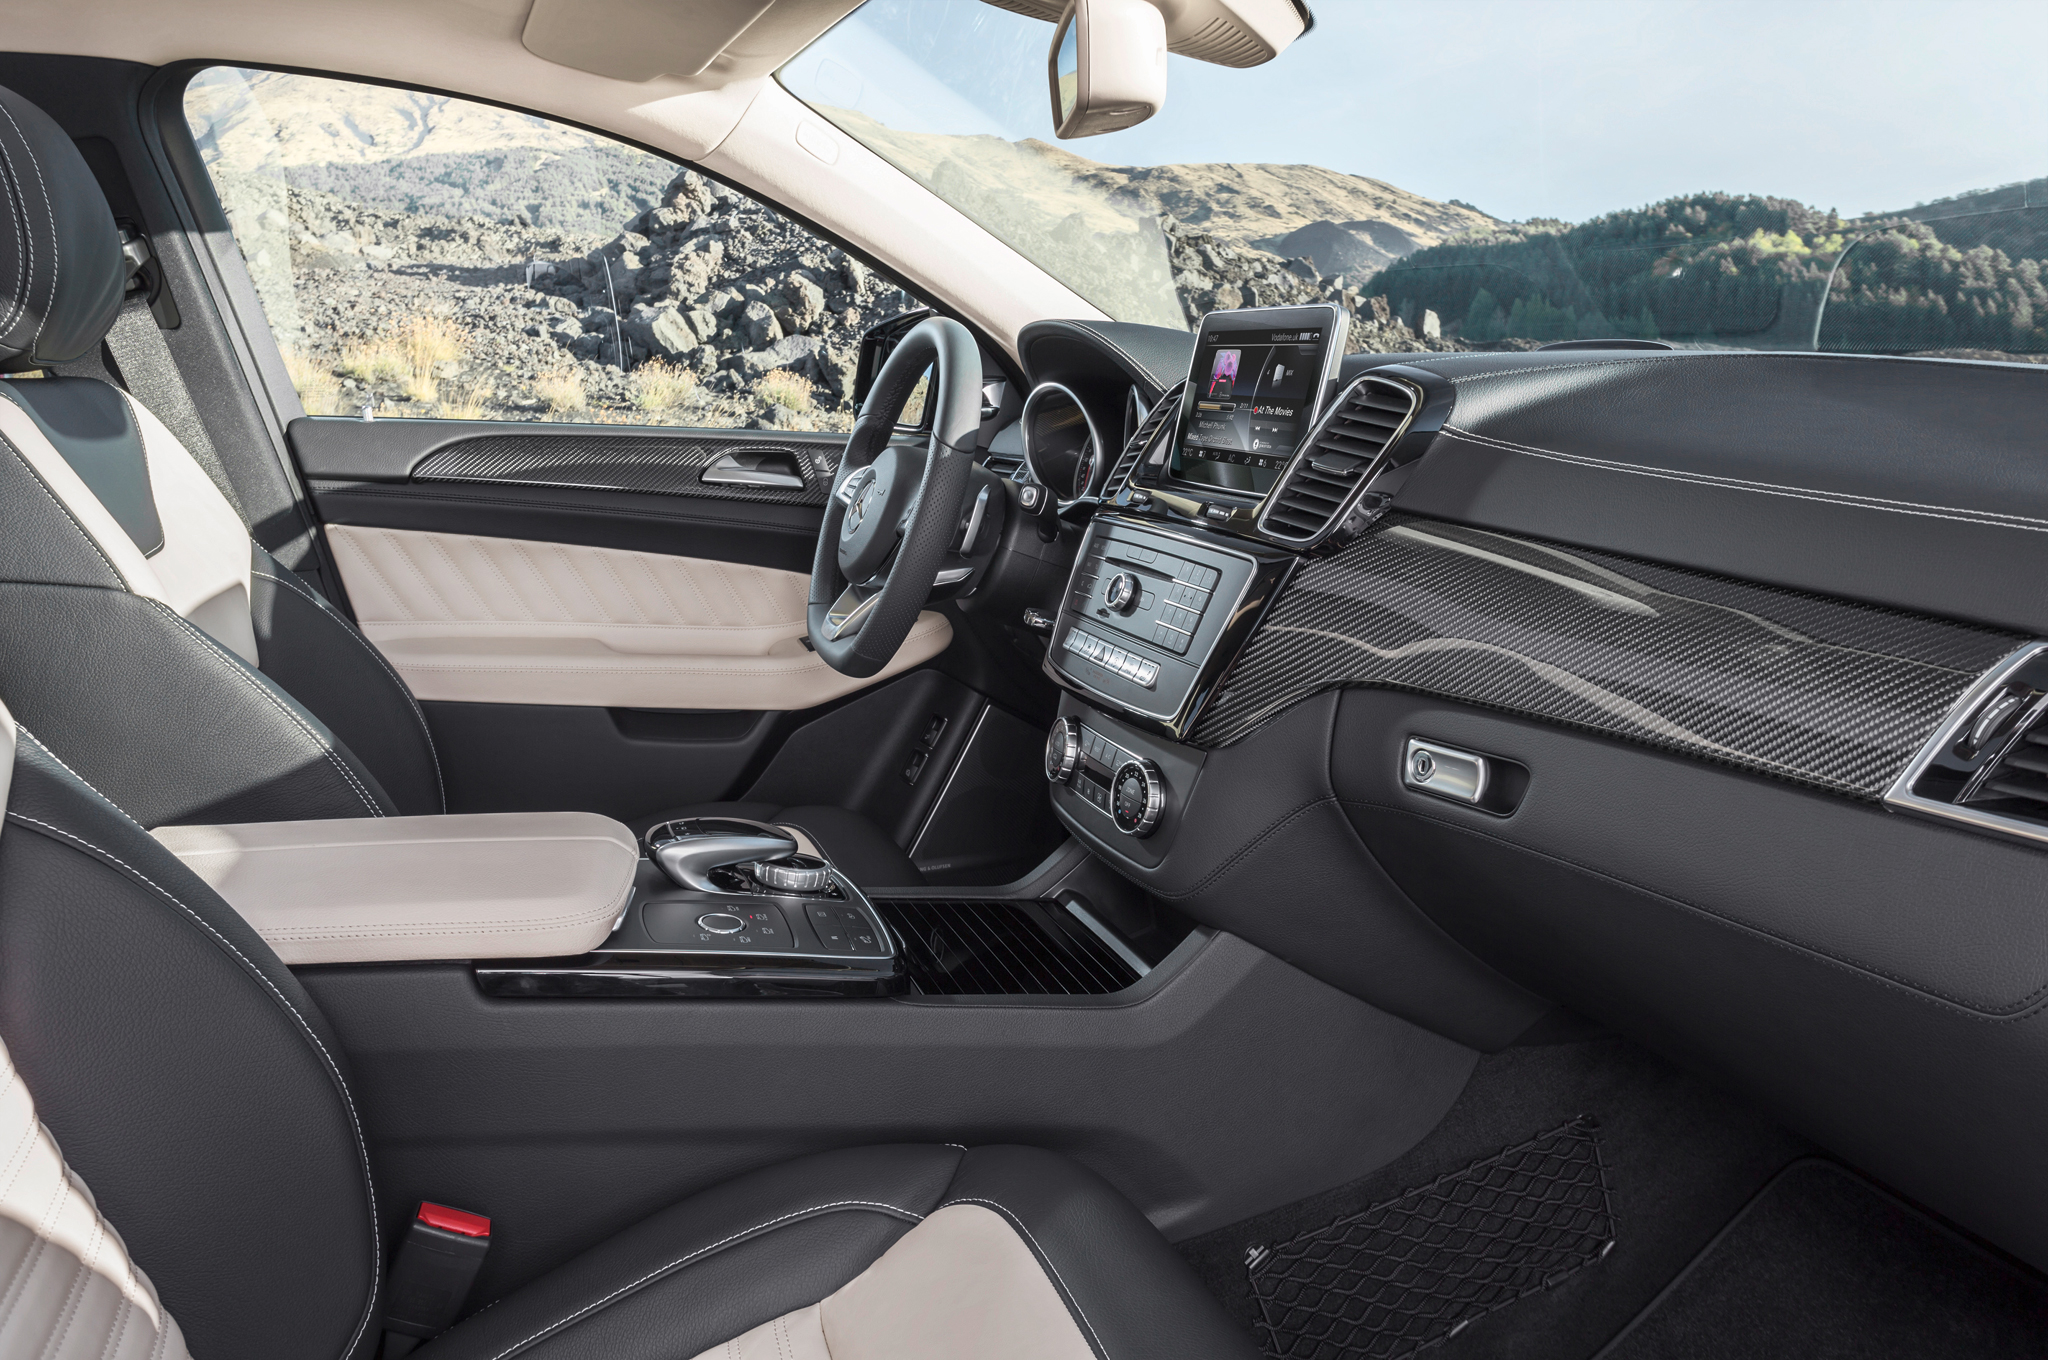 2016 Mercedes Benz Amg Gle63s Coupe Front Interior Profile (Photo 8 of 8)